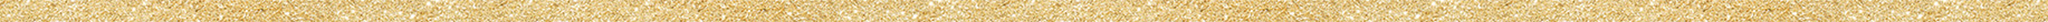 element-gold-sparkle-divider-2048